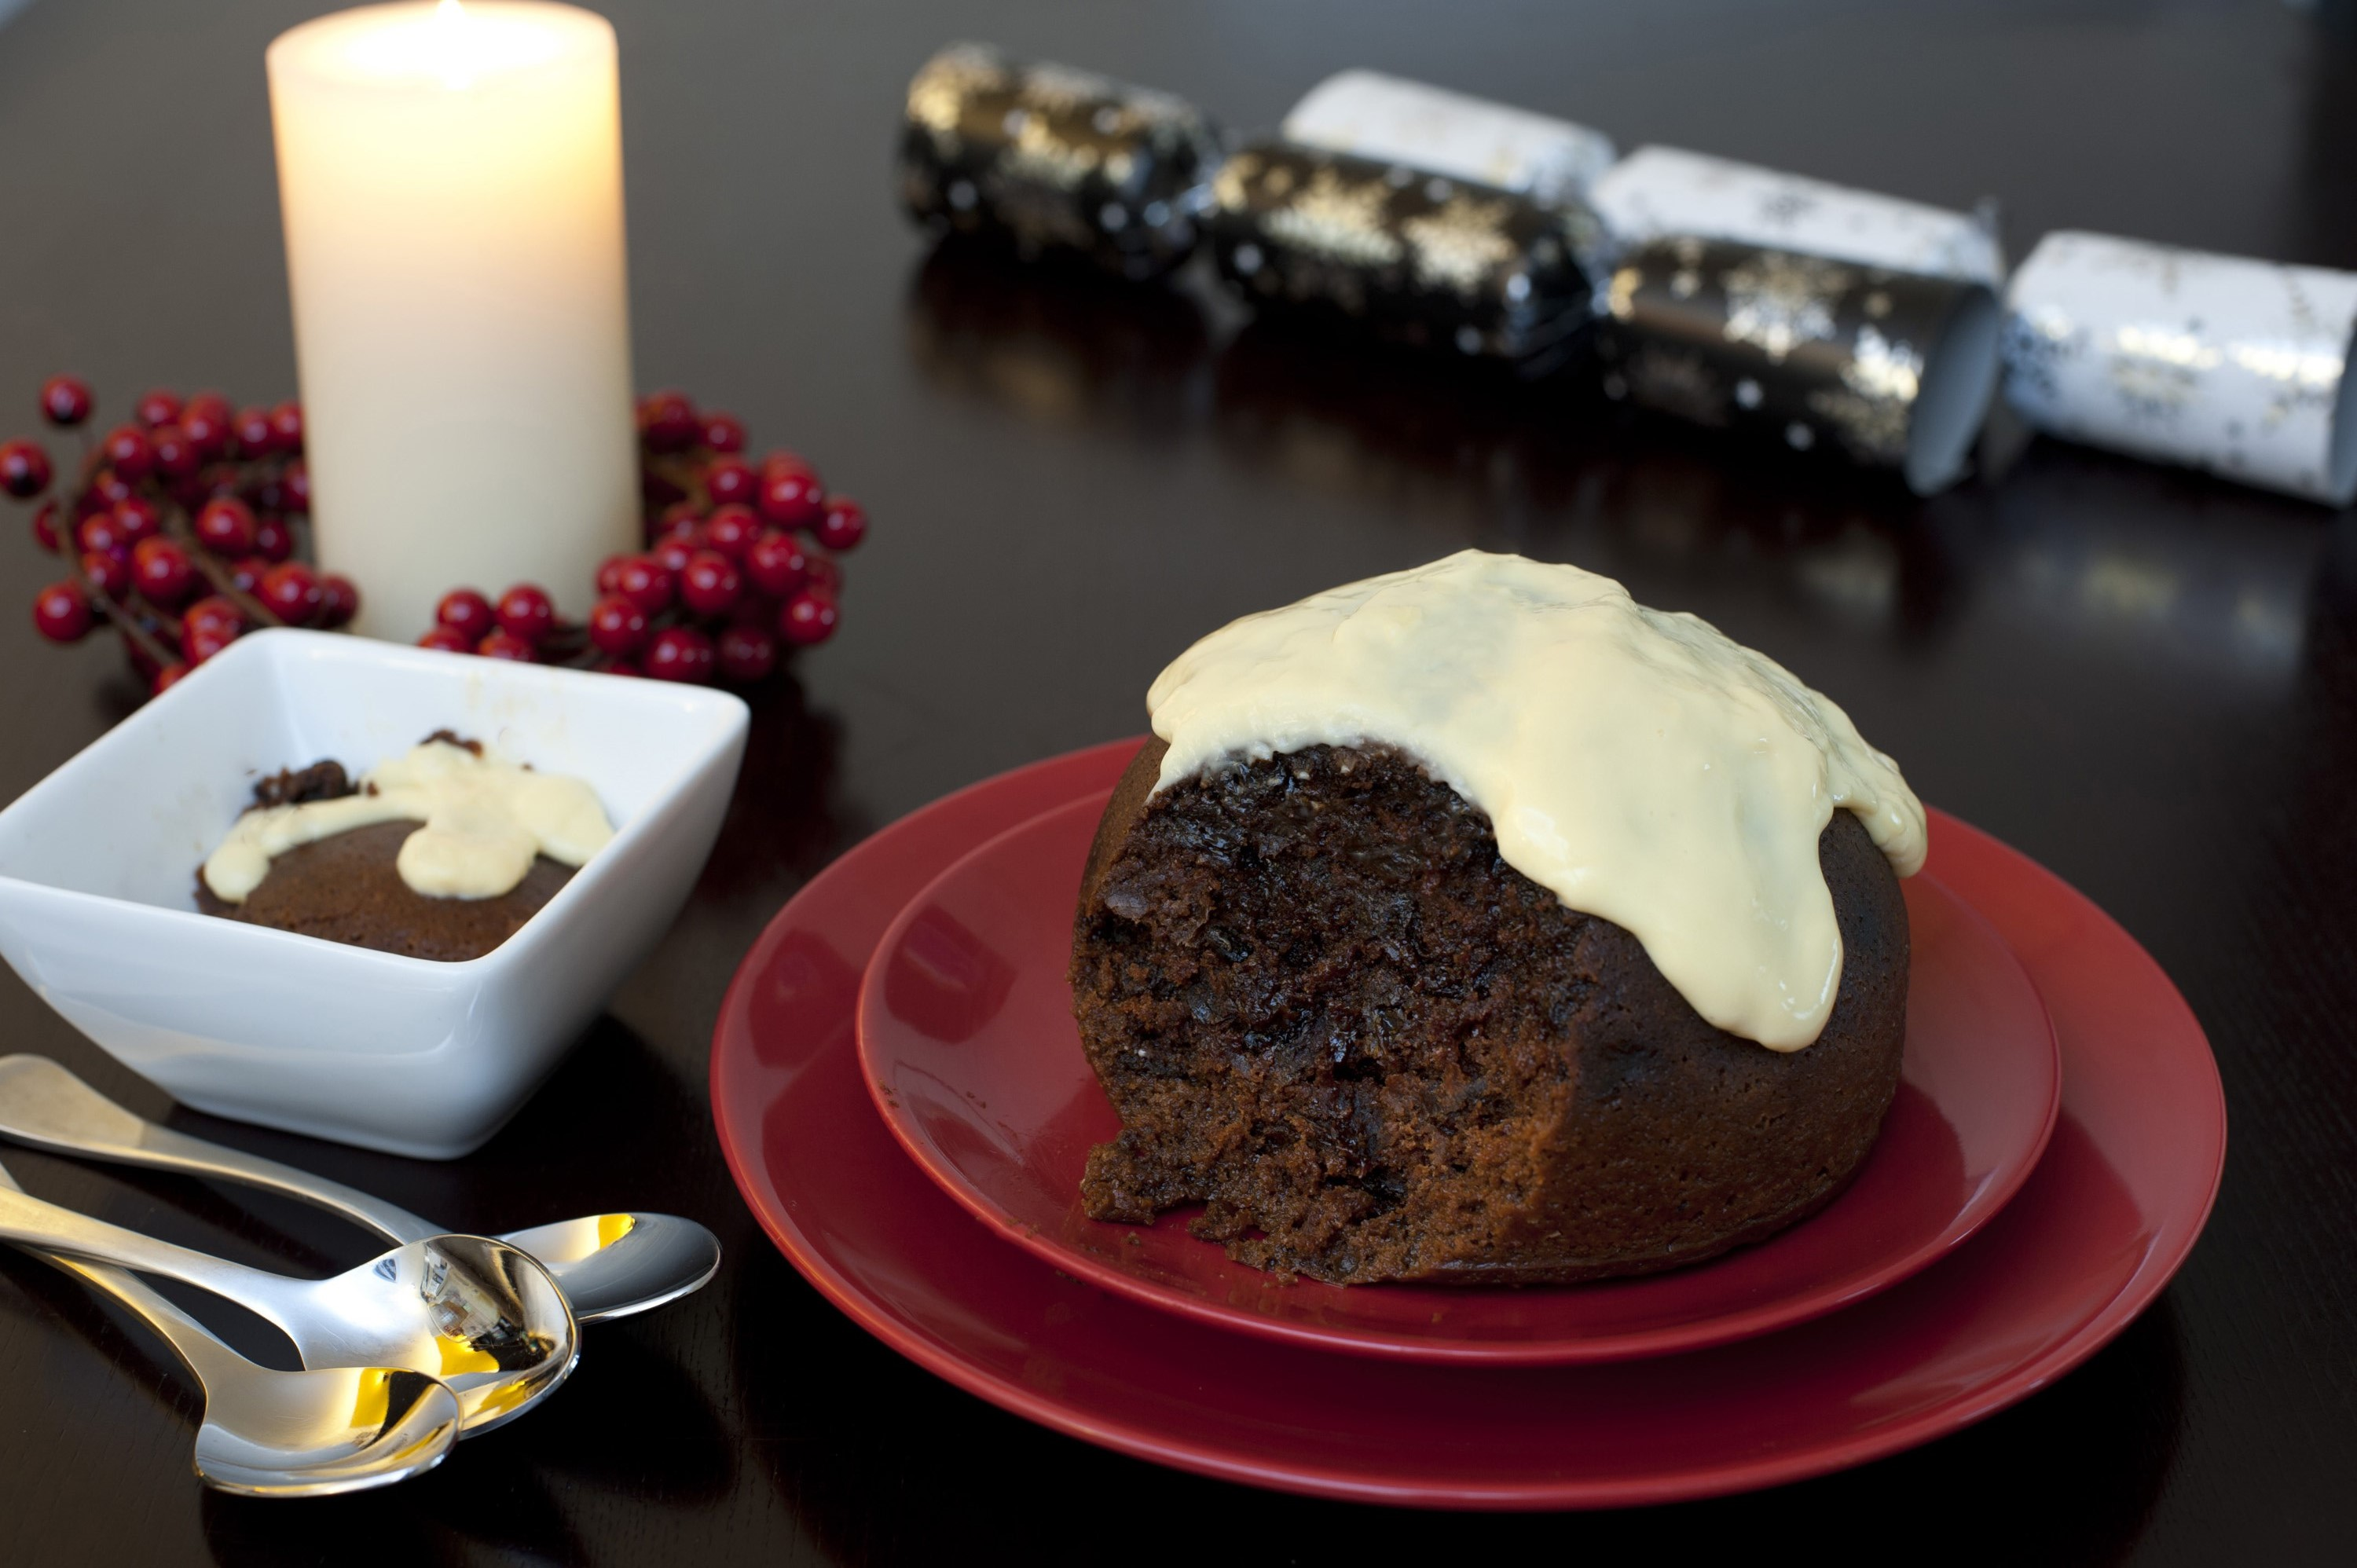 Delicious traditional Christmas pudding with a rich fruity texture topped with brandy sauce and served on a festive Christmas table